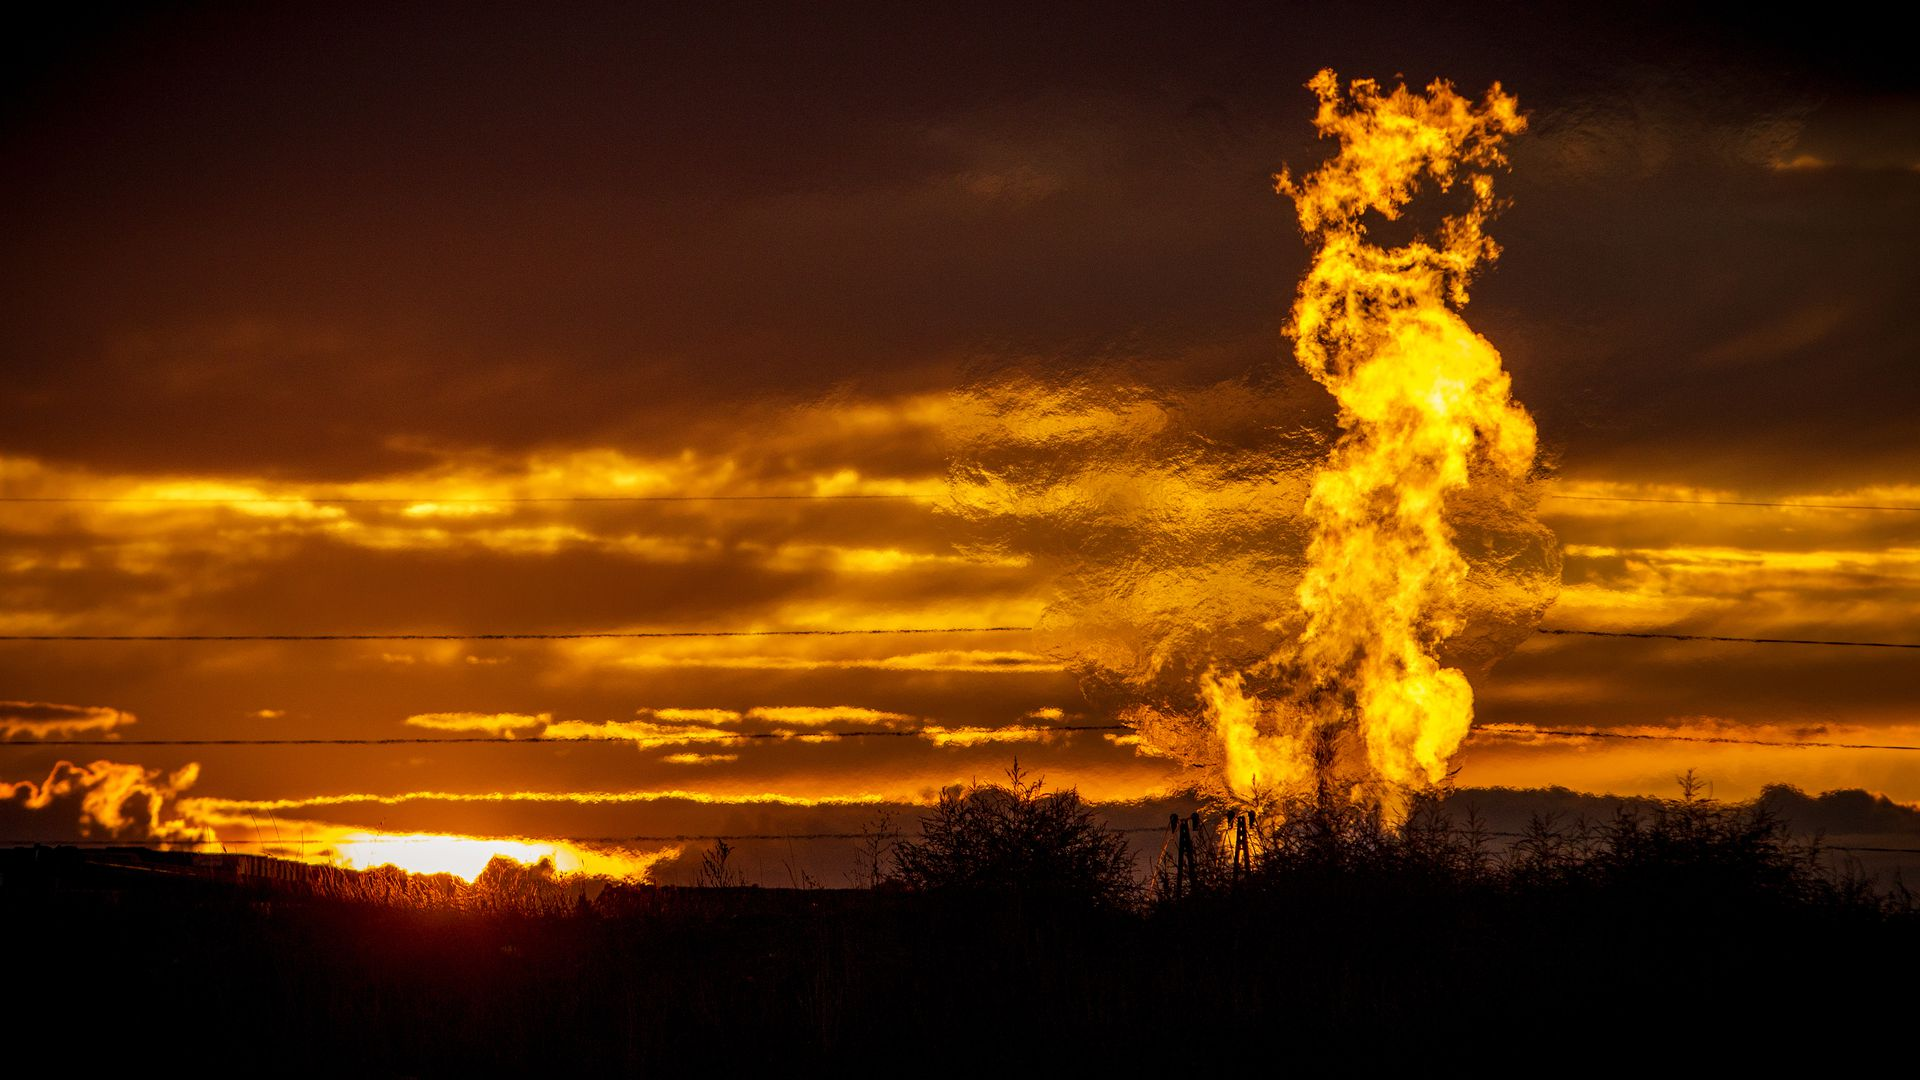 Exxon asks EPA to regulate methane emissions from oil and gas